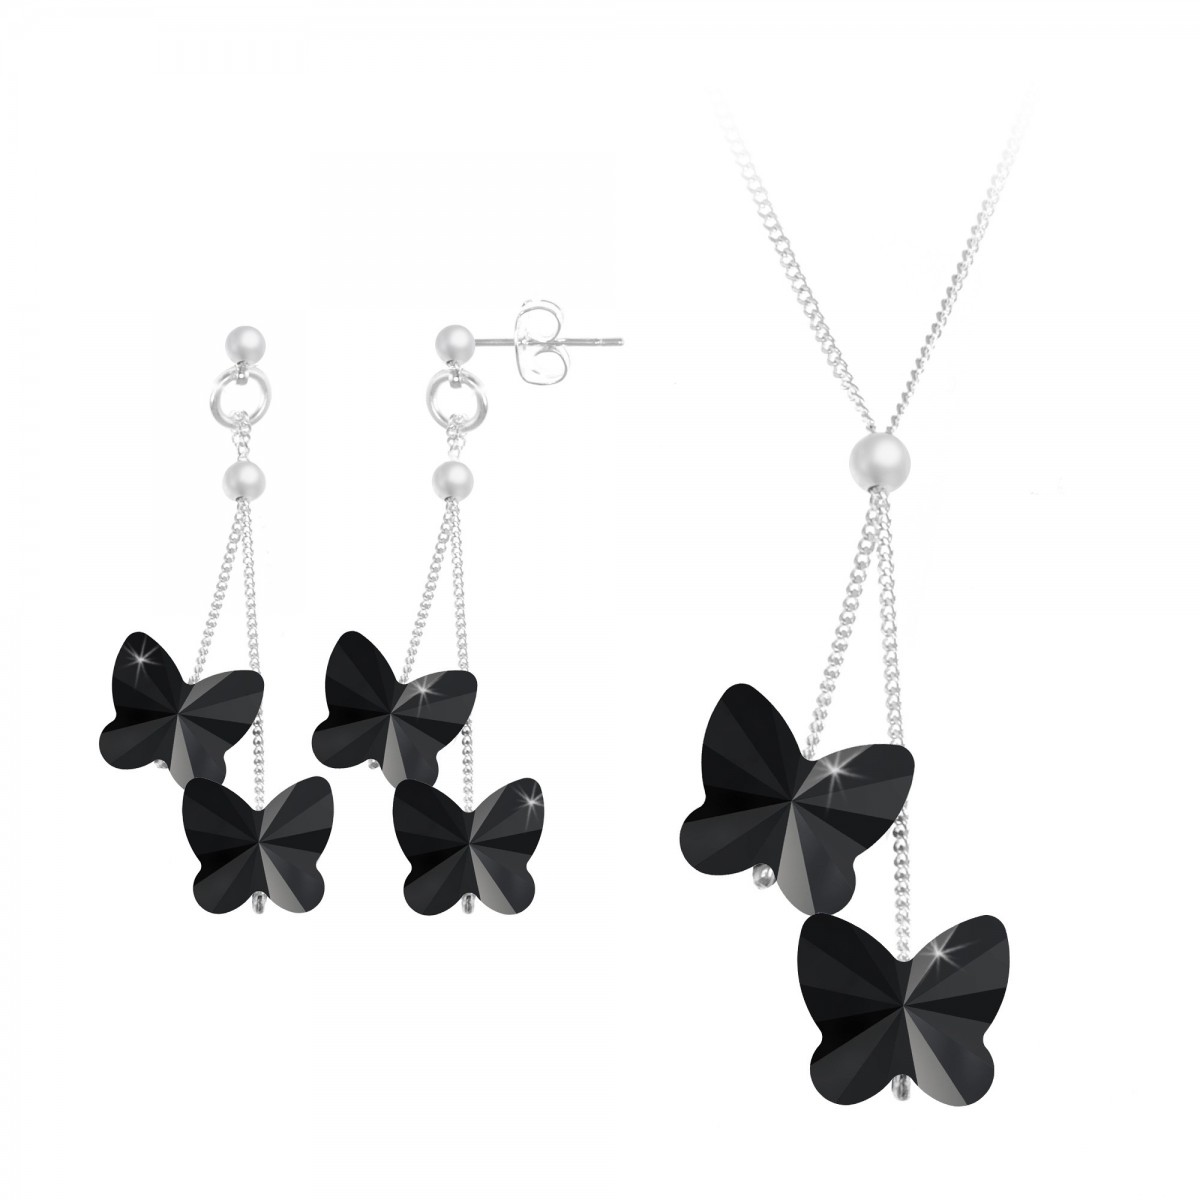 Parure collier et boucles d'oreilles papillons noirs So Charm made with Crystal from Swarovski